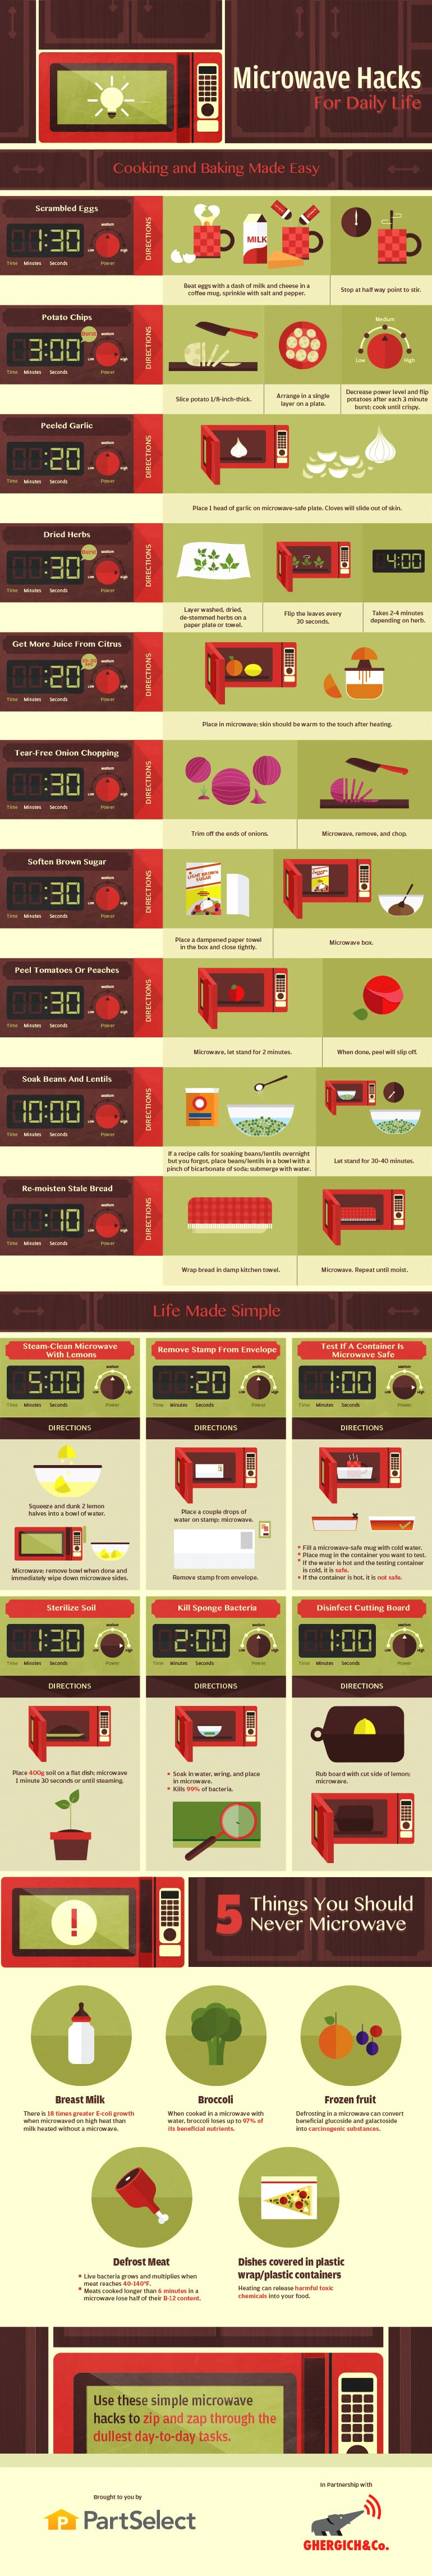 Microwave Hacks For Your Daily Life Infographic